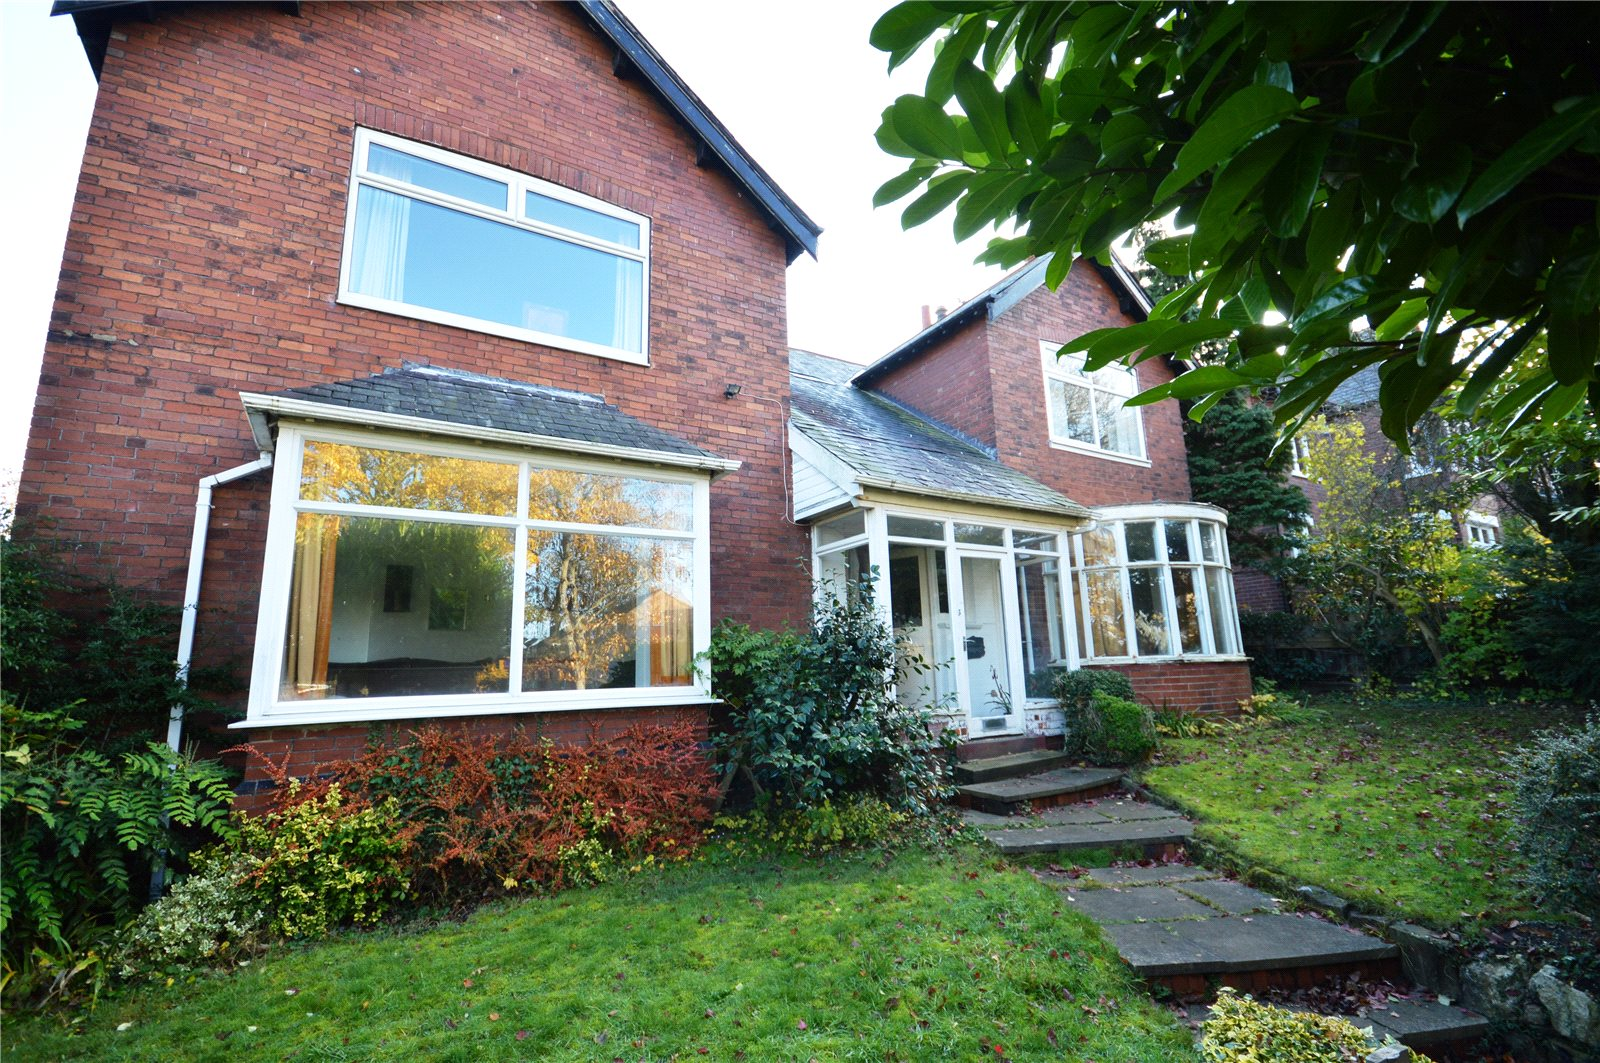 property for sale in Sandal, exterior of detached family home